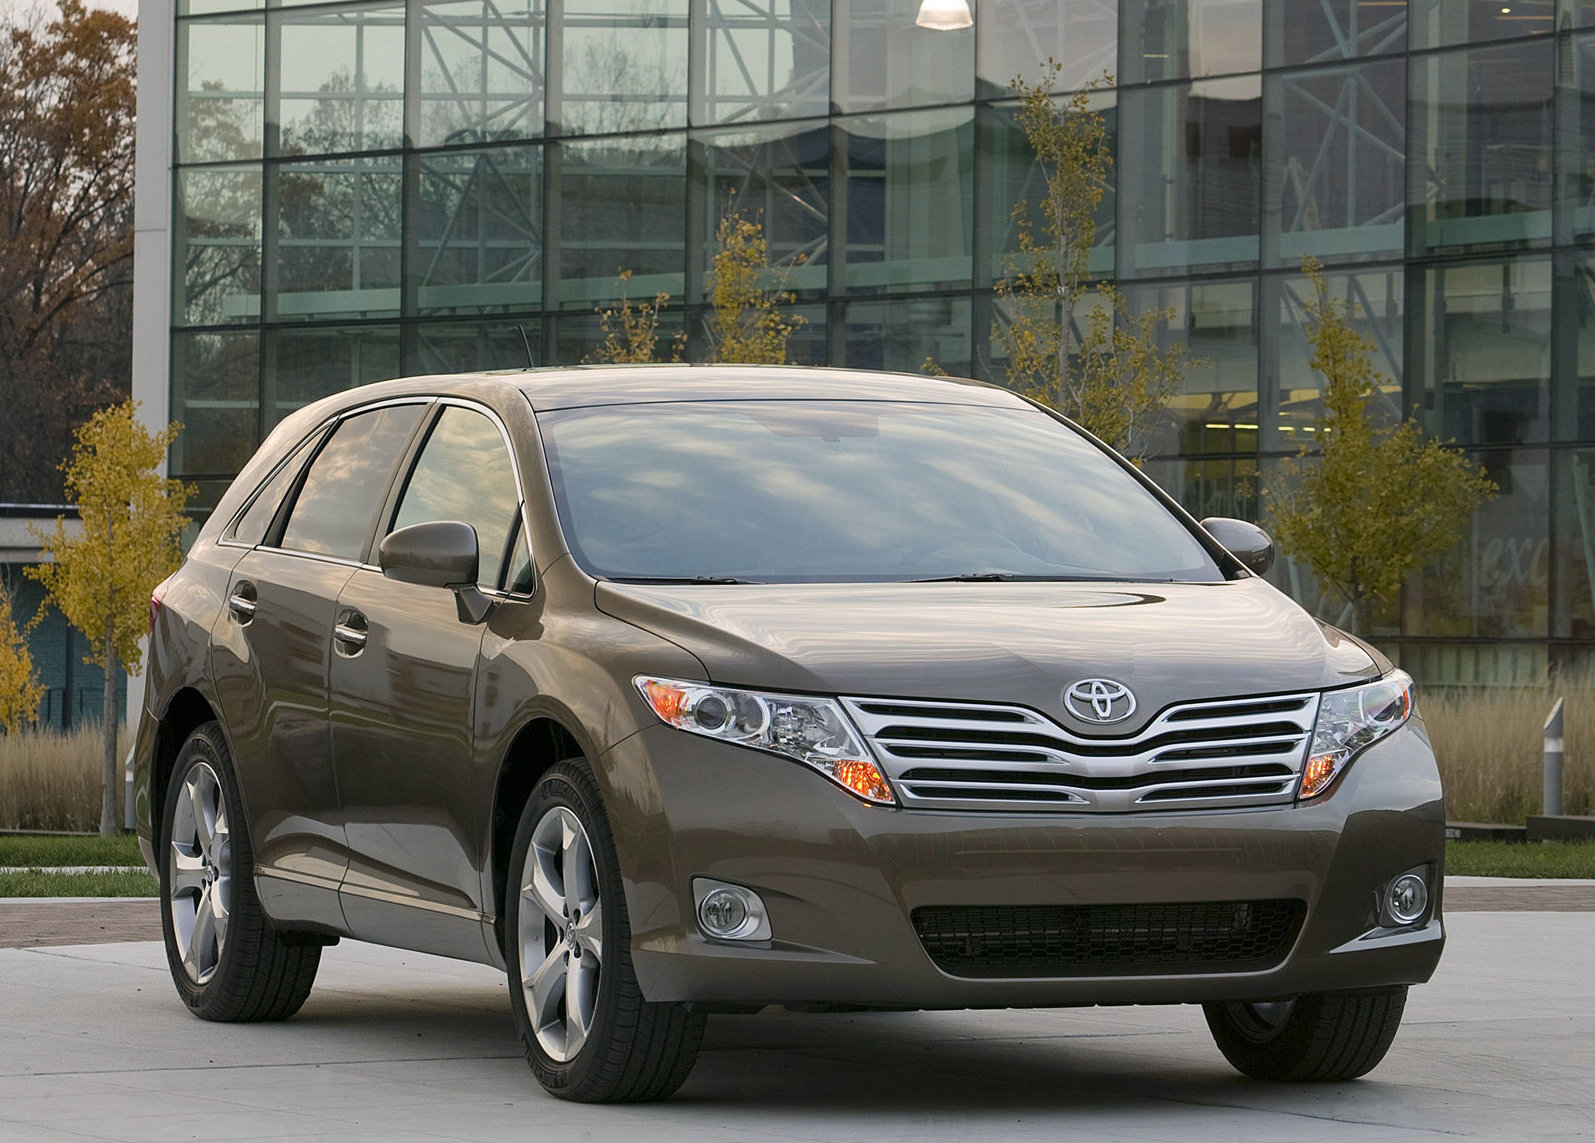 The Original Toyota Venza Was (Kind Of) Ahead of Its Time